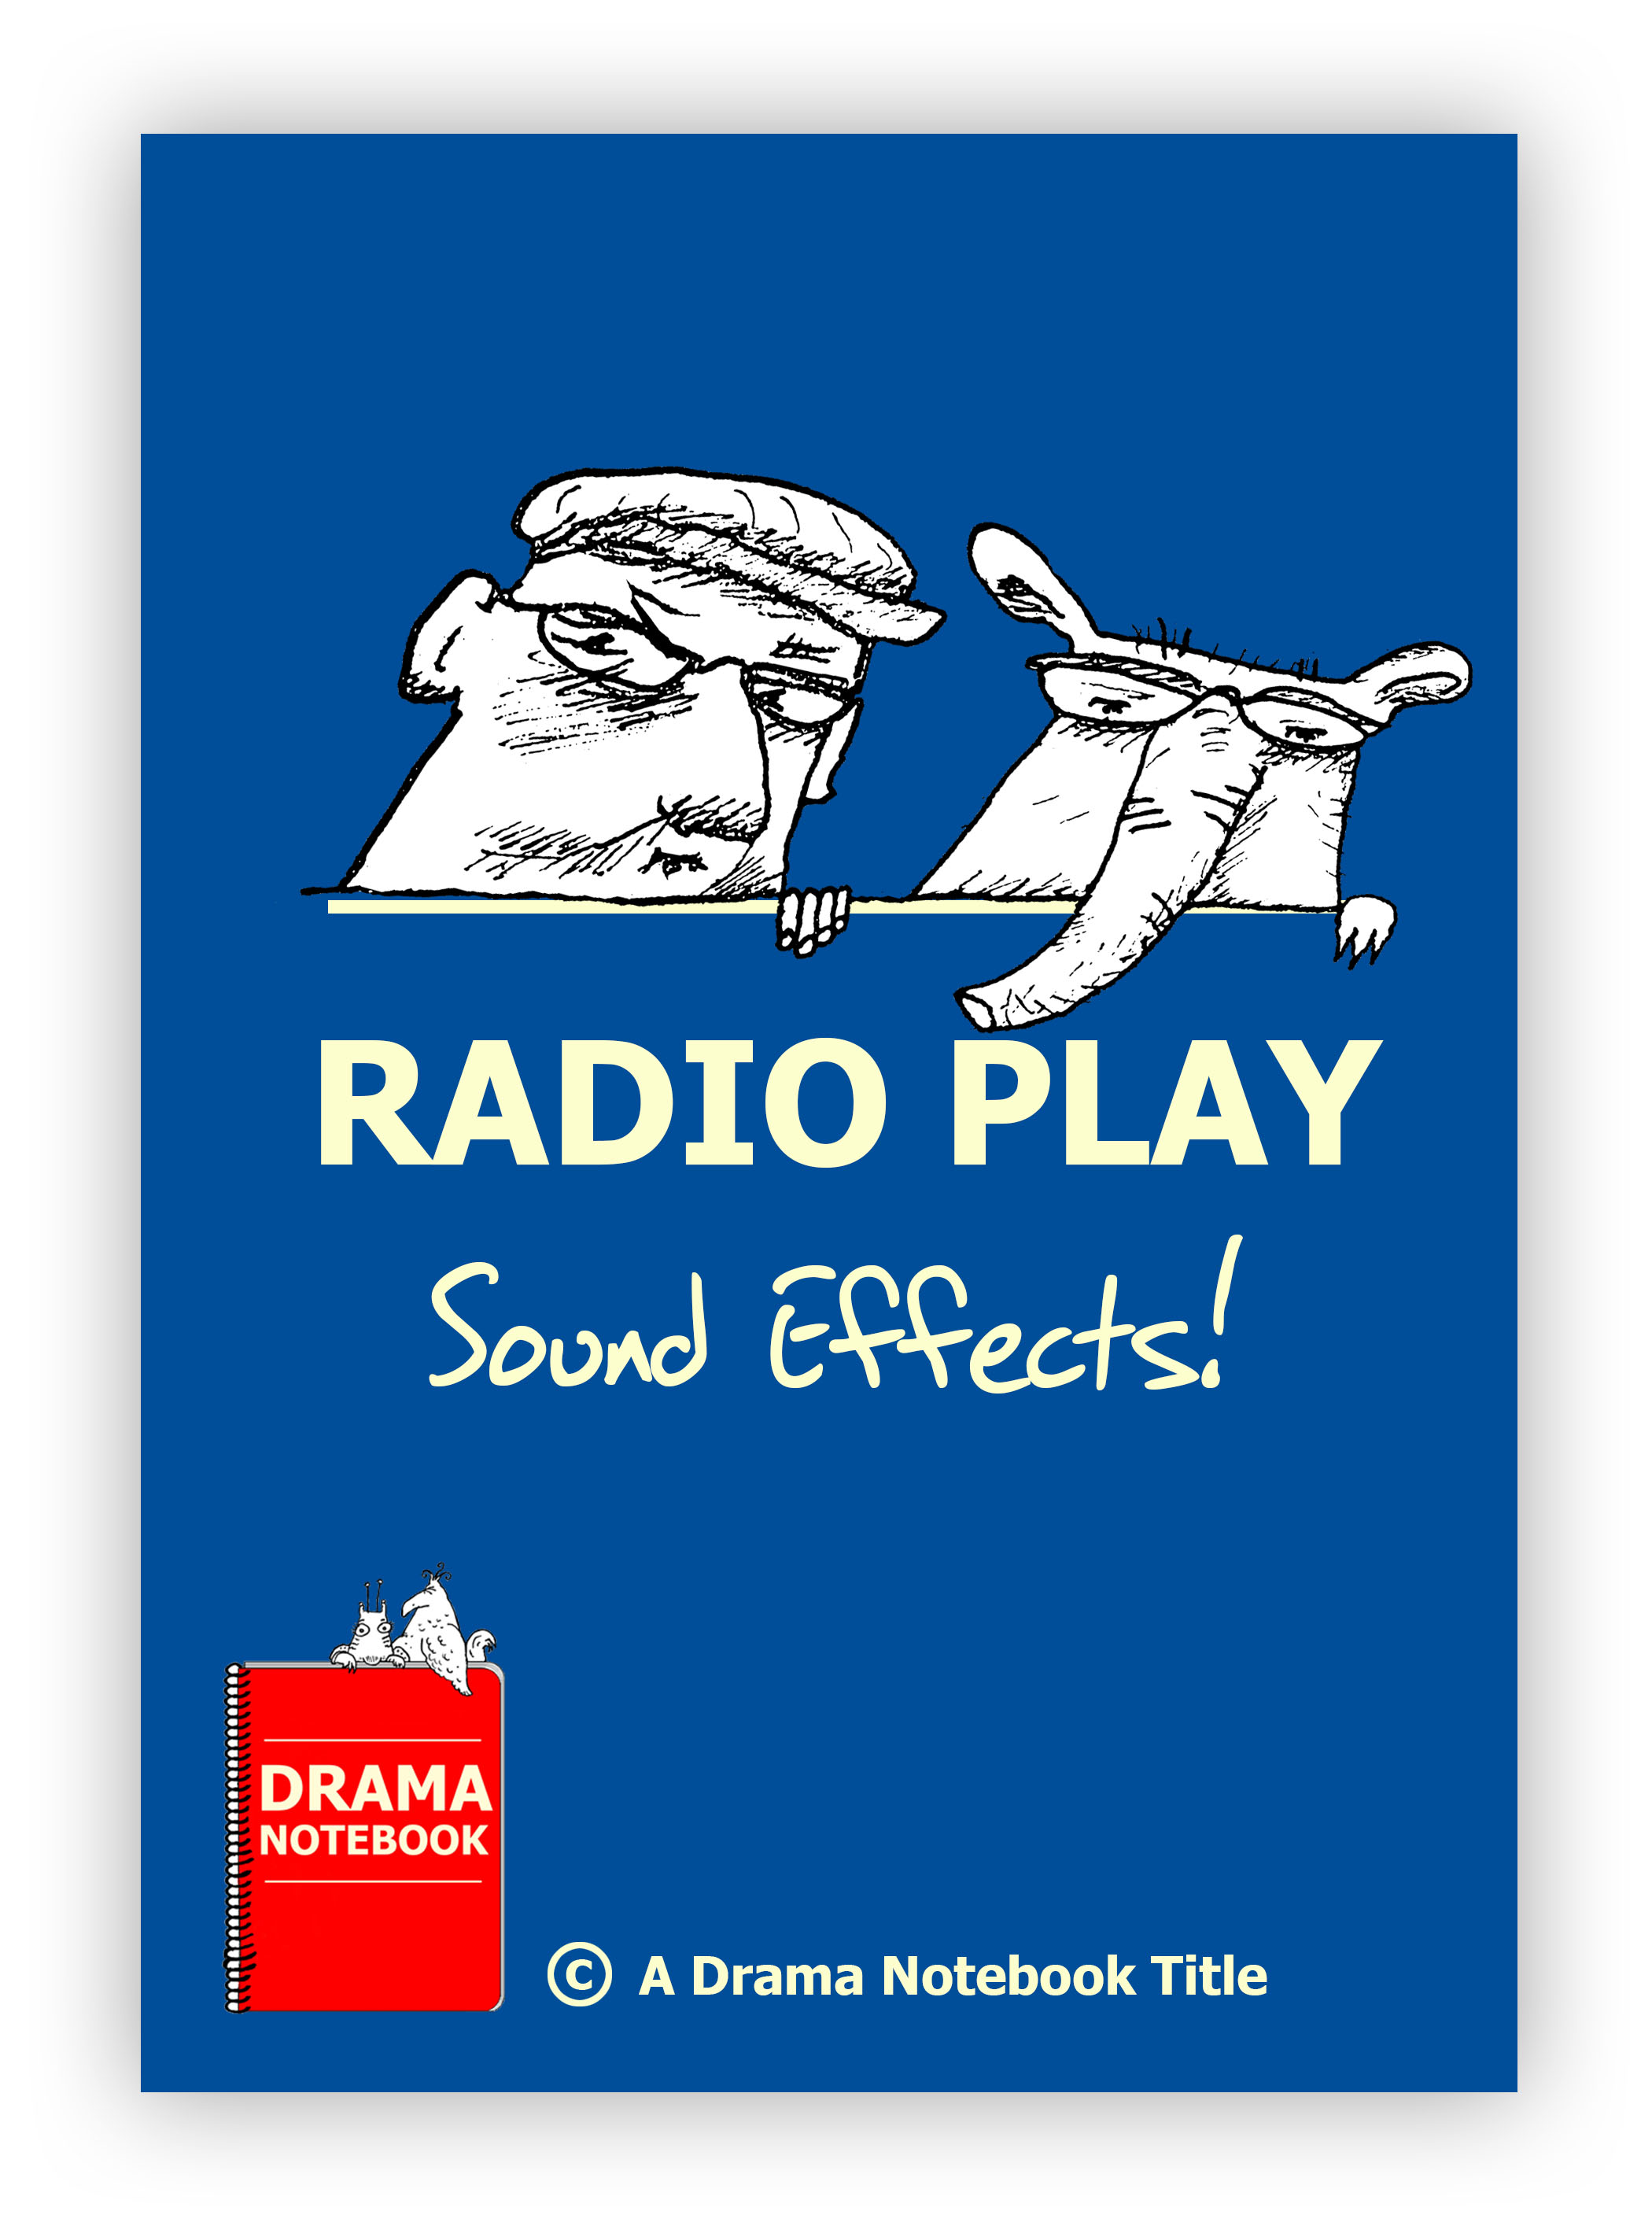 Radio Play Sound Effects